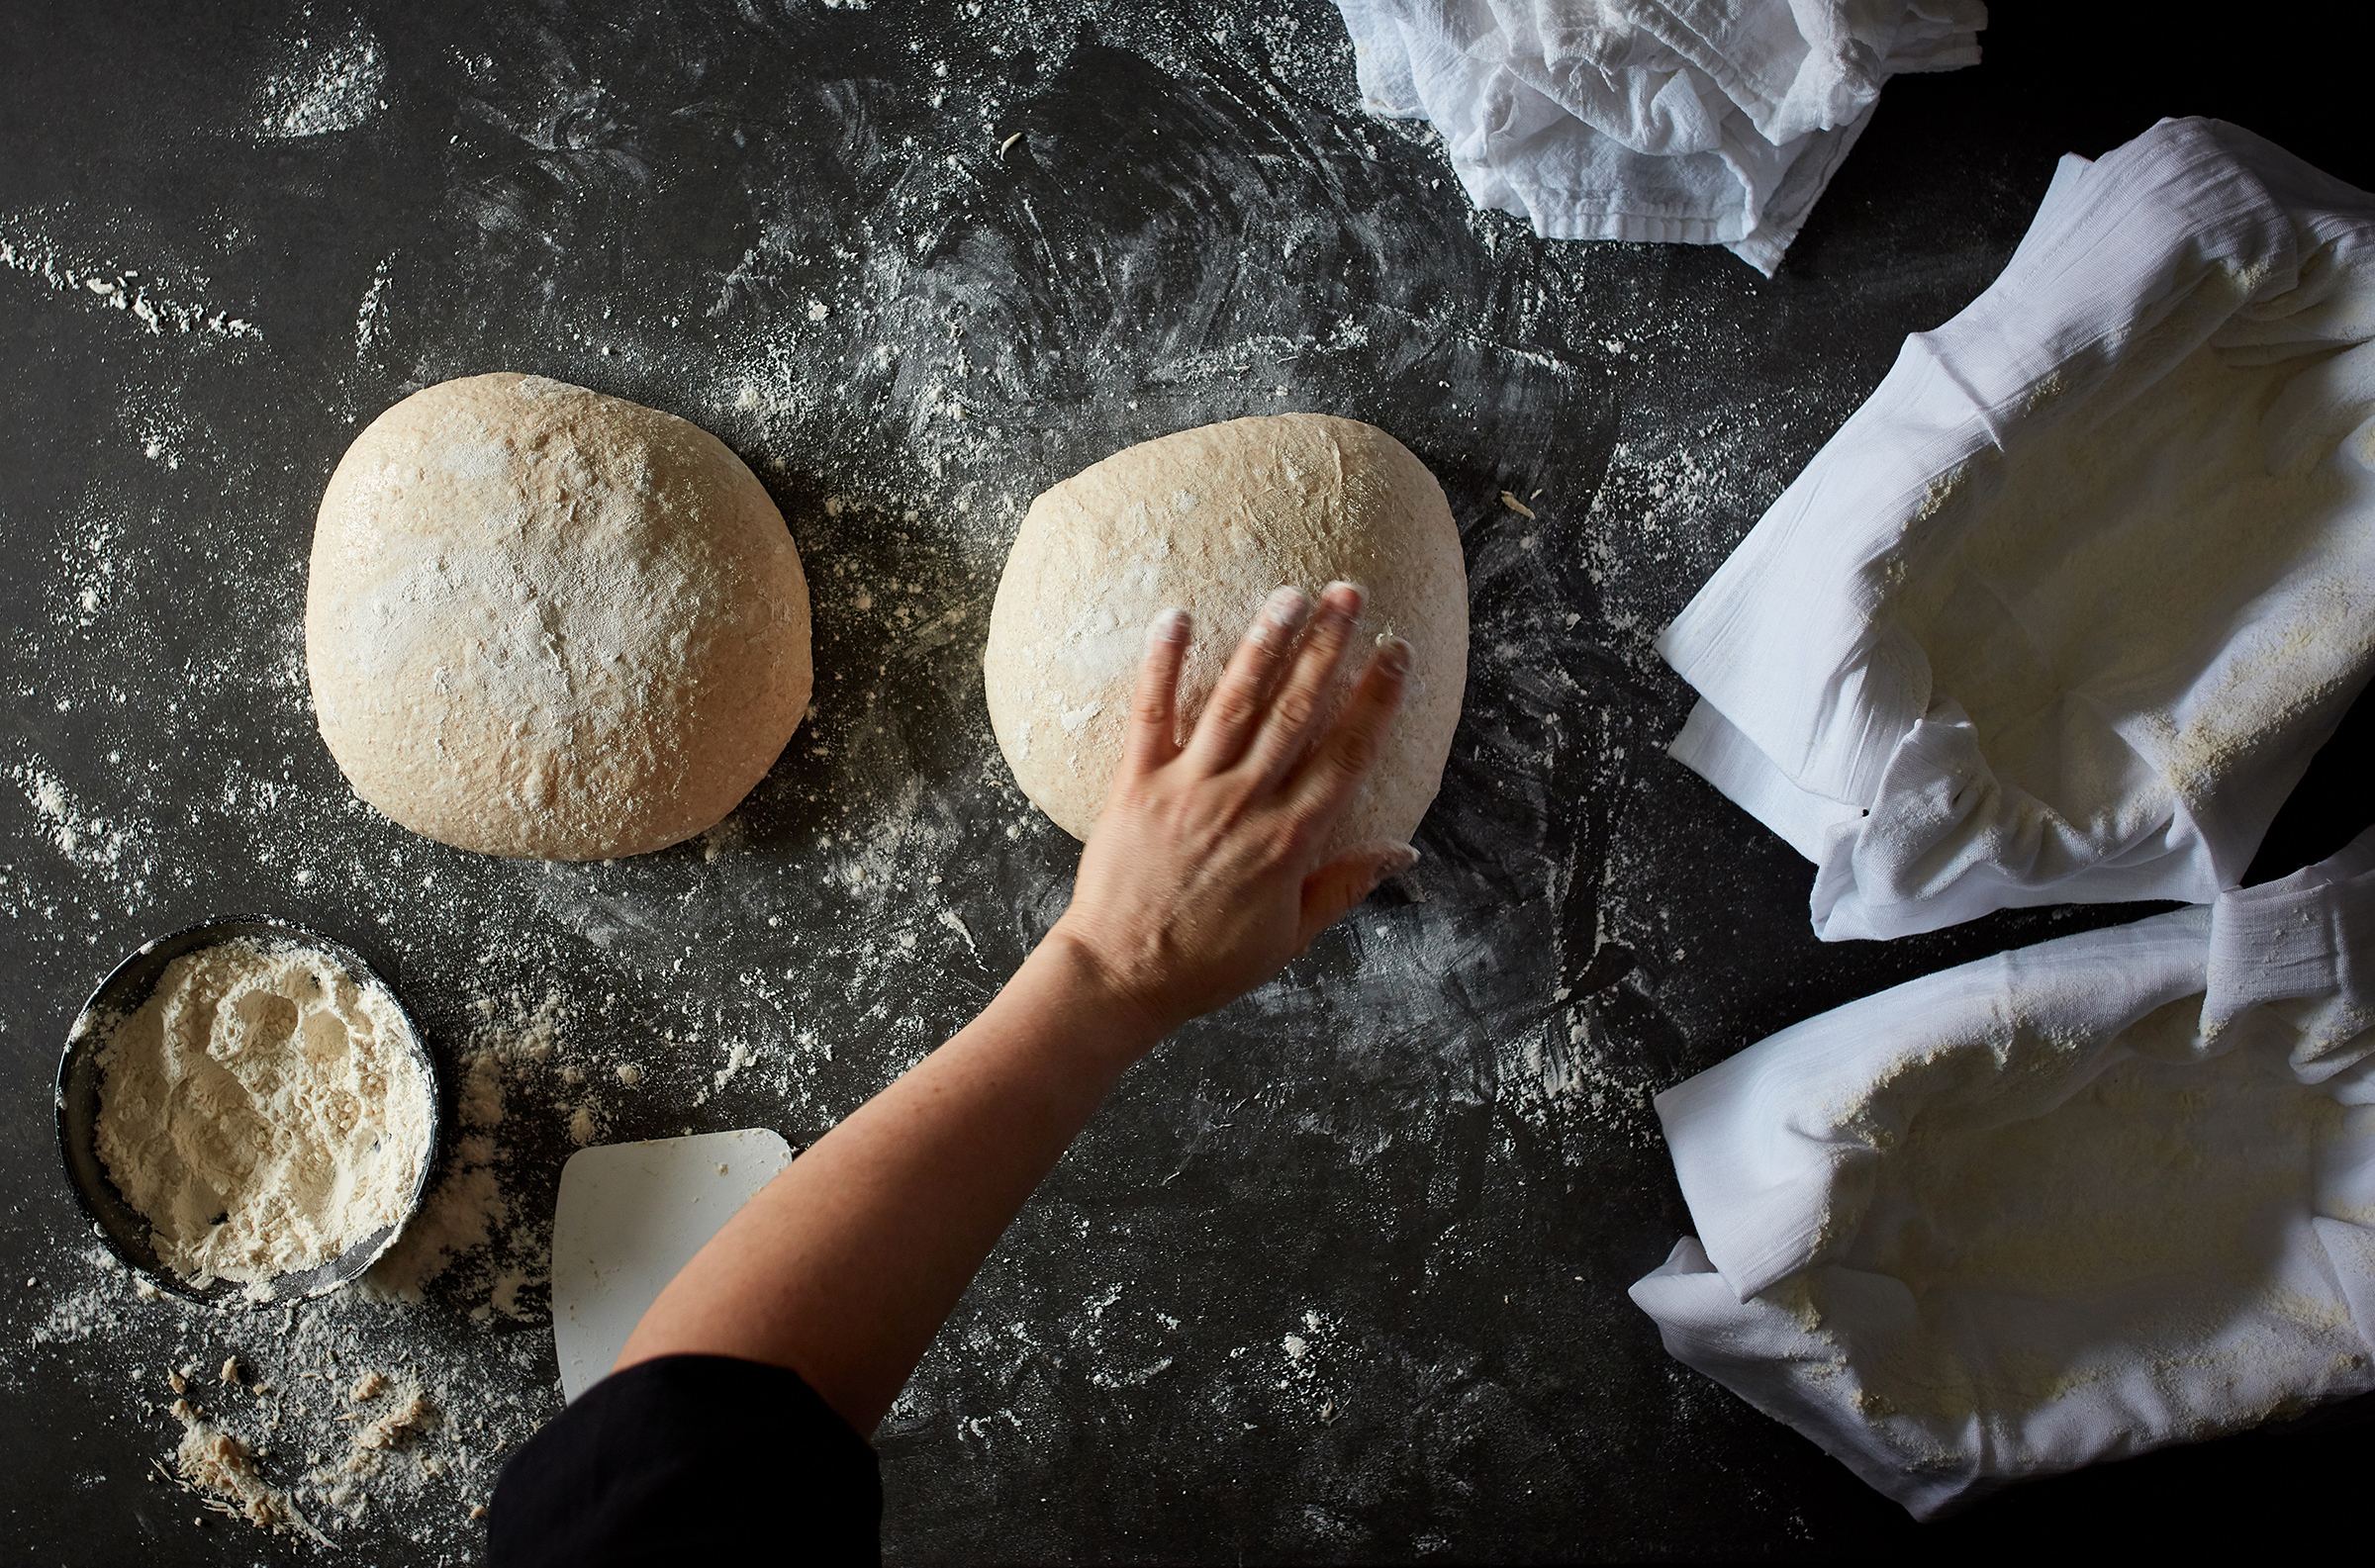 Dough is shaped for sourdough bread in New York, on Sept. 10, 2019.